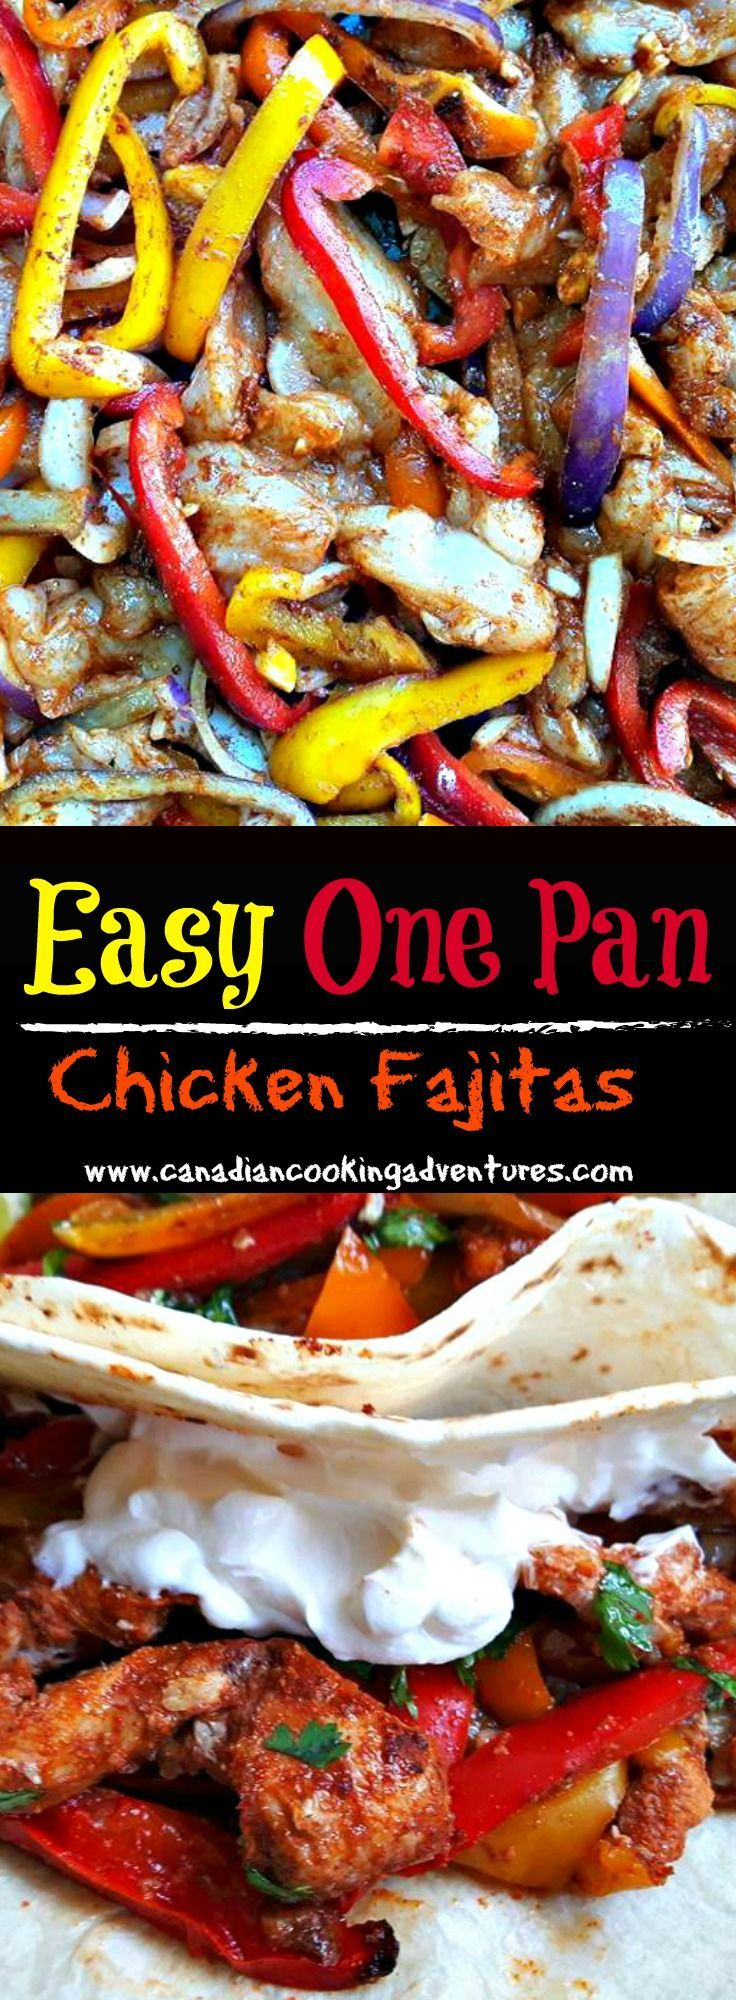 Easy One Pan Chicken Fajitas #chicken #onepan #fajitas #chicken #recipe #canadiancookingadventures #cooking #easy #recipes #cookoff #weekday #meals #fajitas #chicken #peppers #nomnom